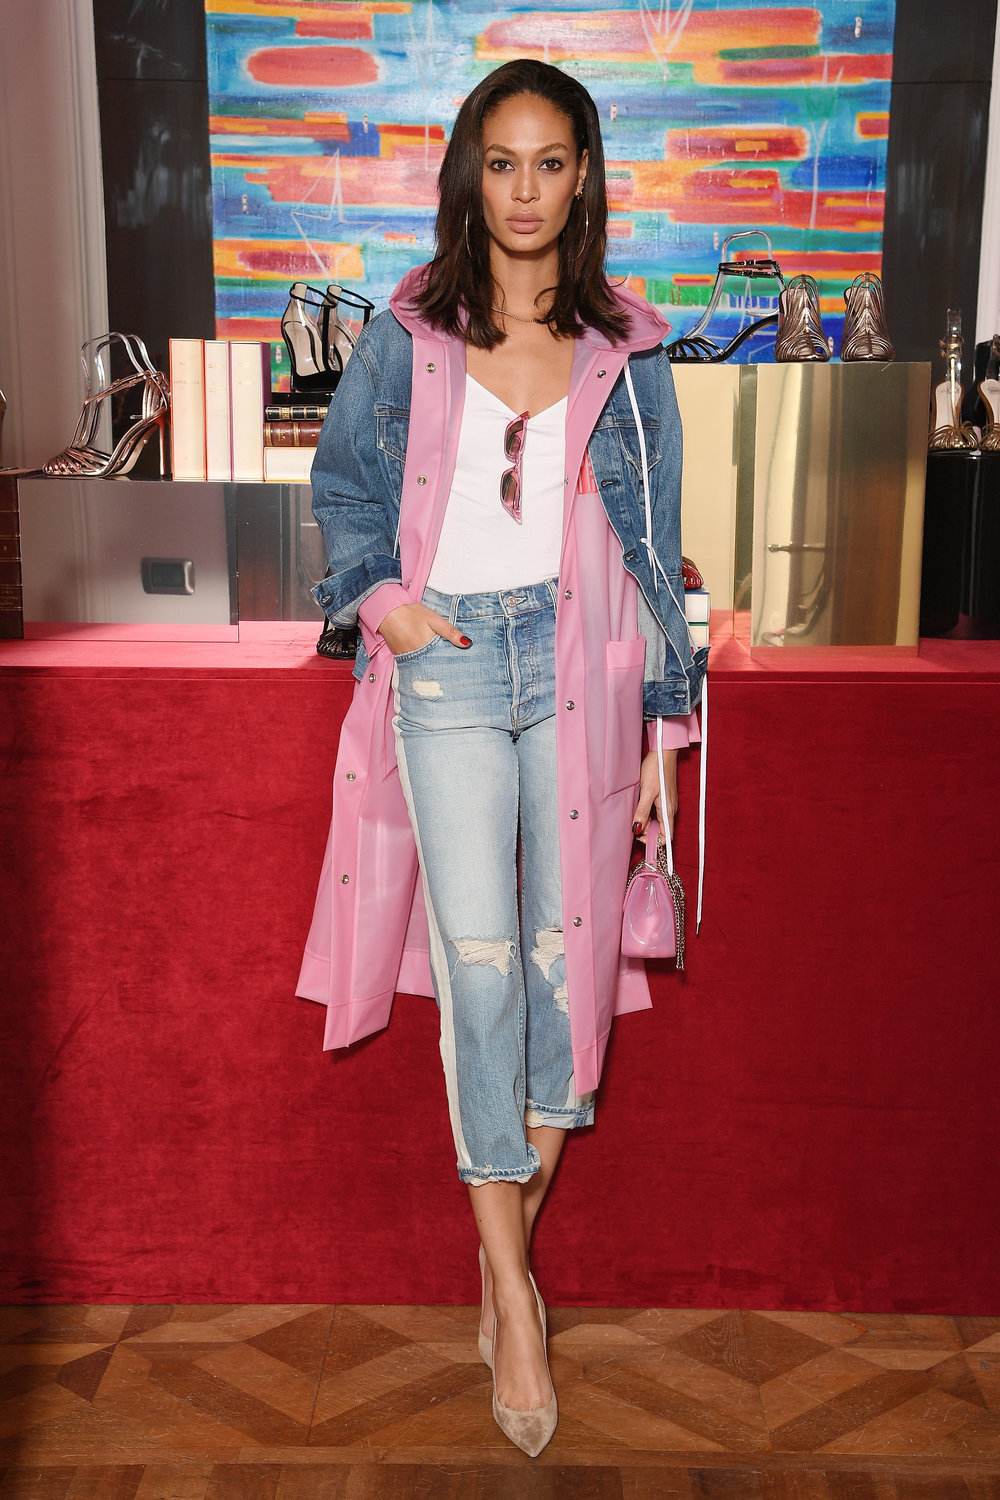 Friday Fits The Best Celebrity Fashion Of Week Rudyk Torch Tunik Women Navy Misty L Gettyimages 923425084 Master